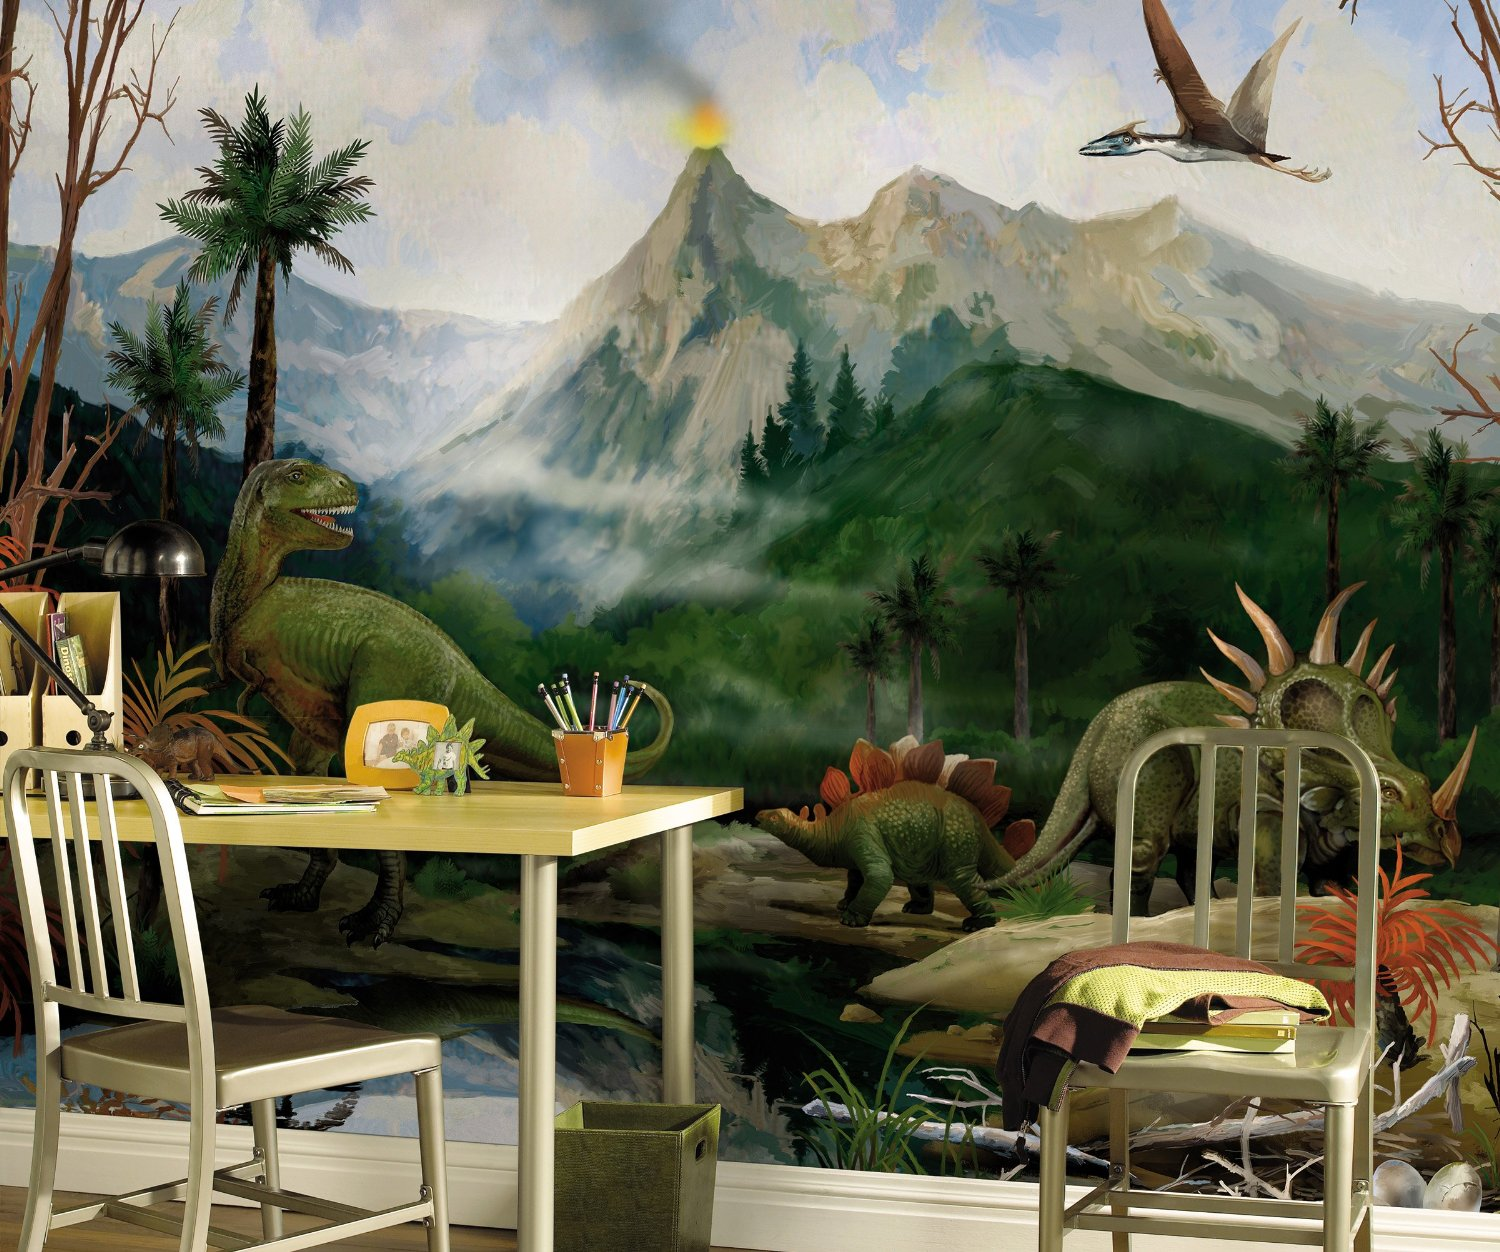 Dinosaurs Mural By Candice Olson Ck7779m Mp4975m